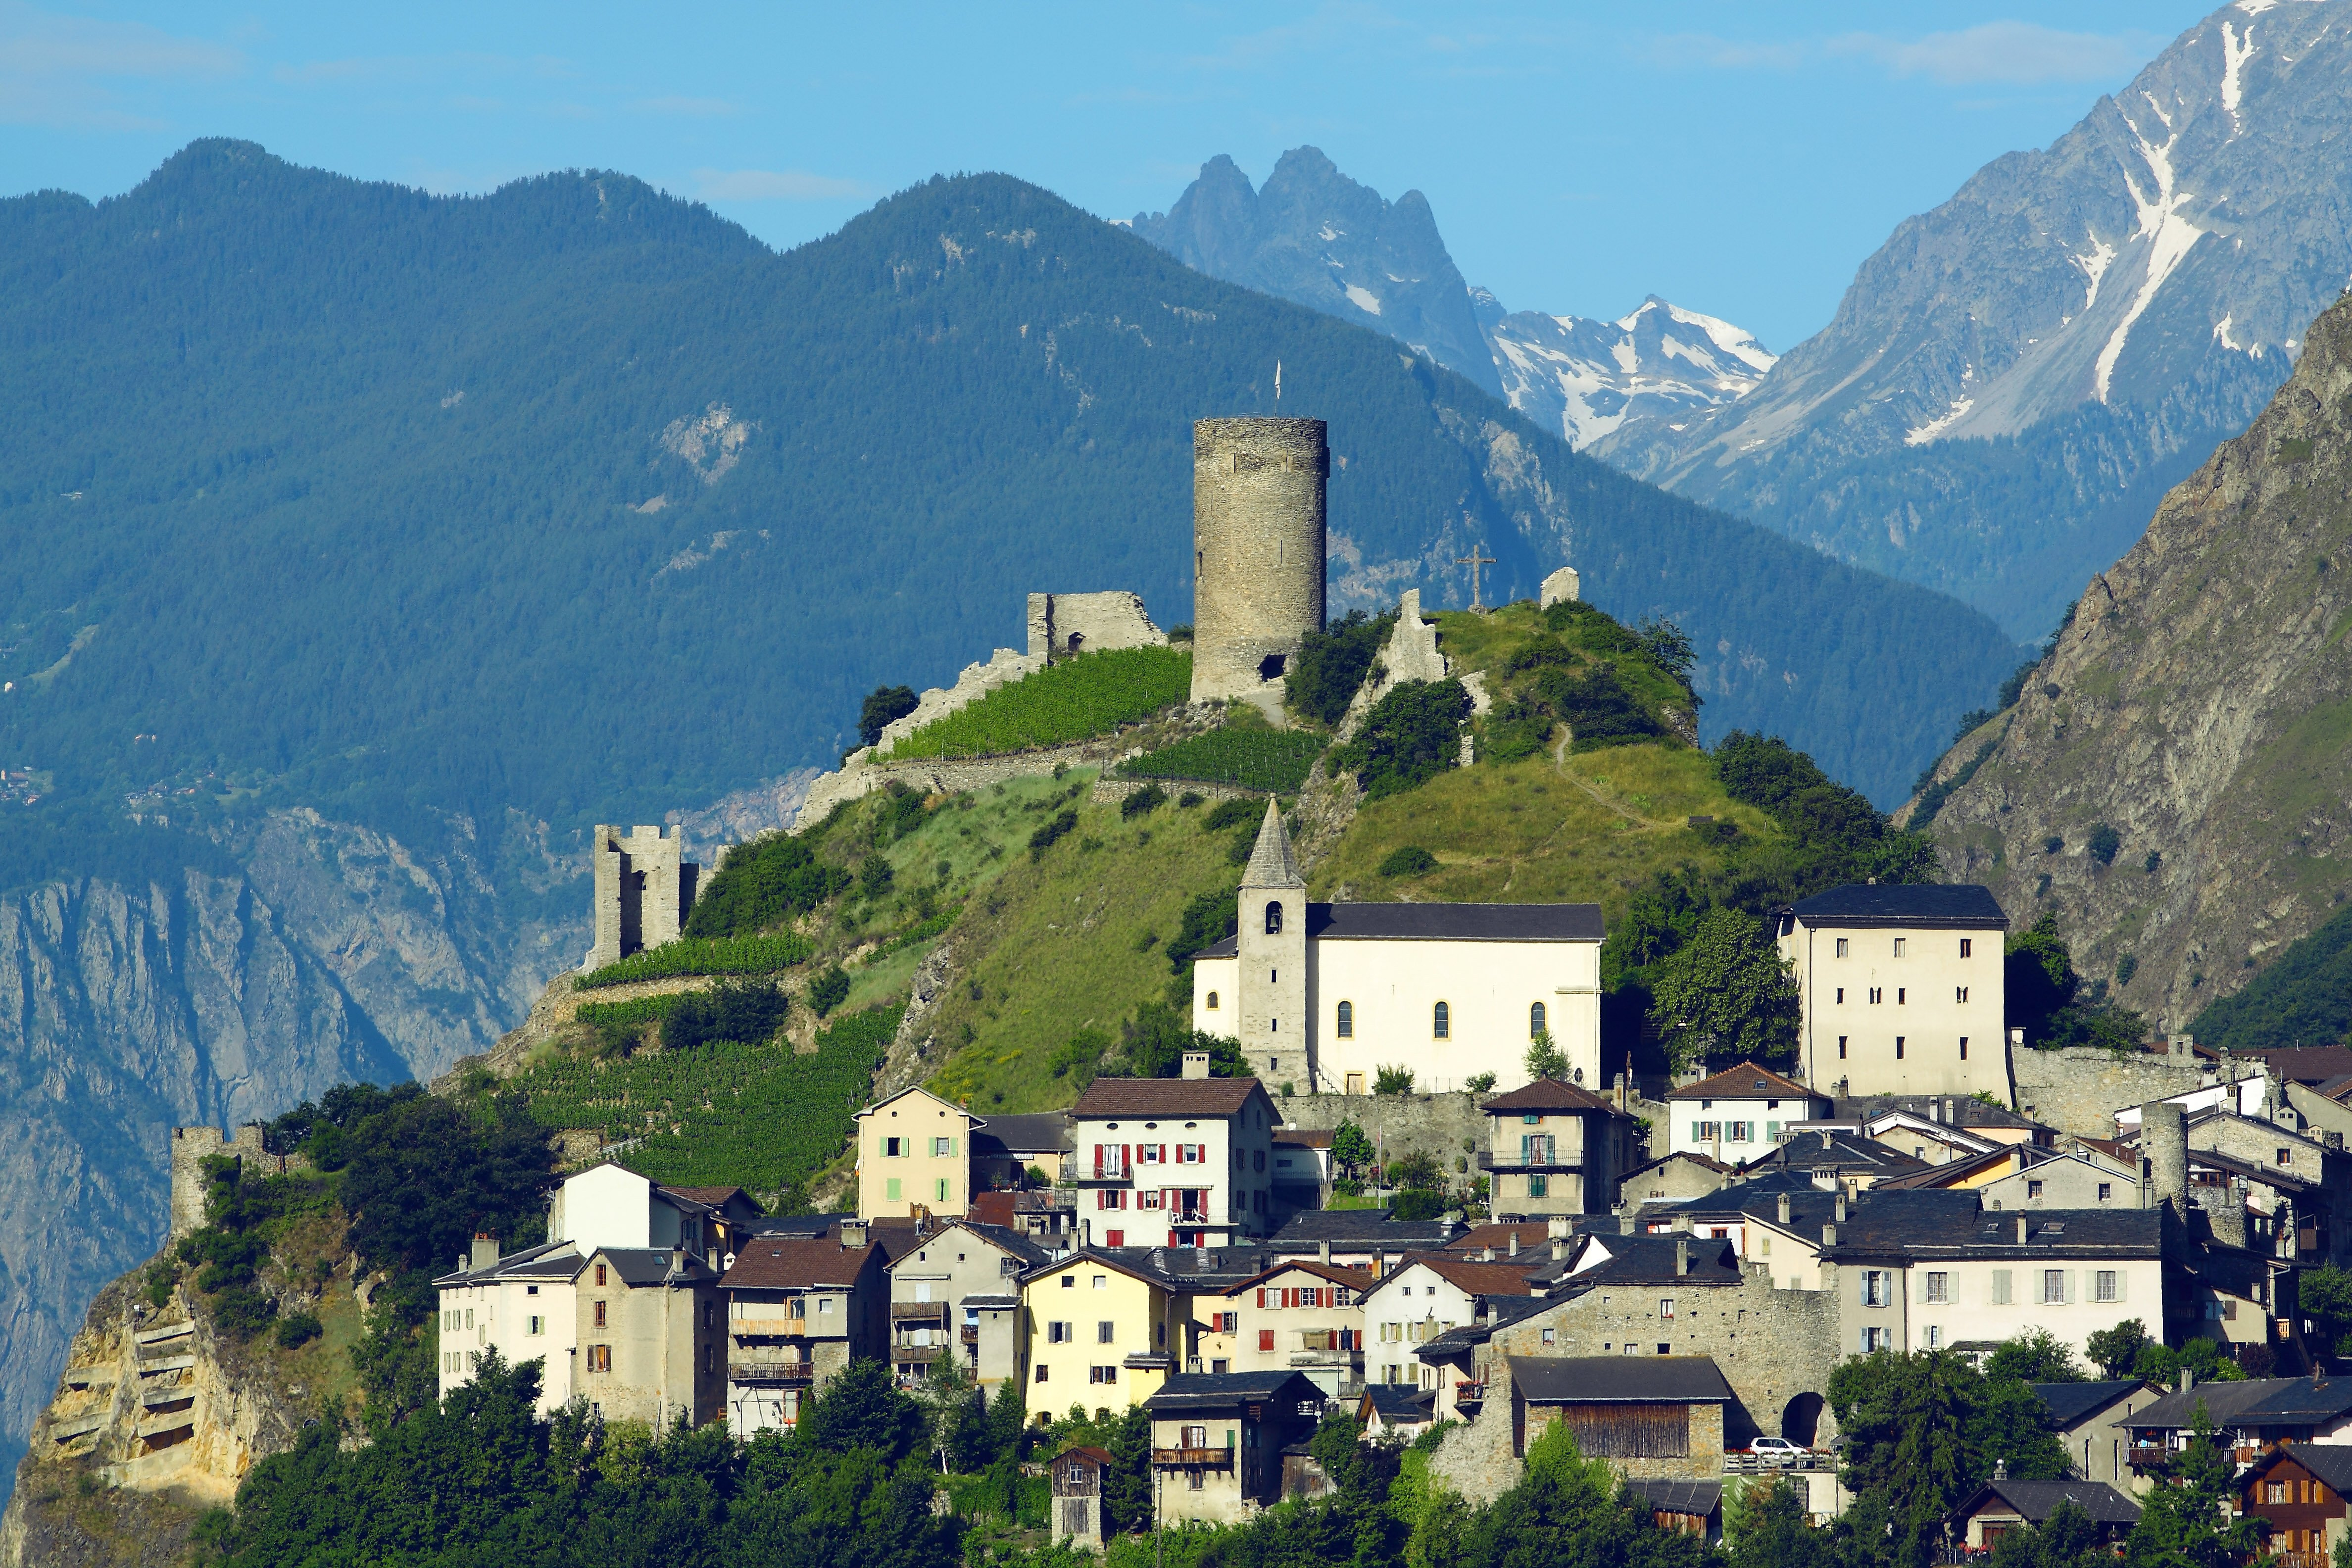 From the lakeside town of Le Bouveret to the capital of Valais, this final stage of the Valais Cycling Tour takes you along the banks of the mighty Rhone River, through Rhone Valley Vineyards, and up a final climb towards the spa resort of Ovronnaz.